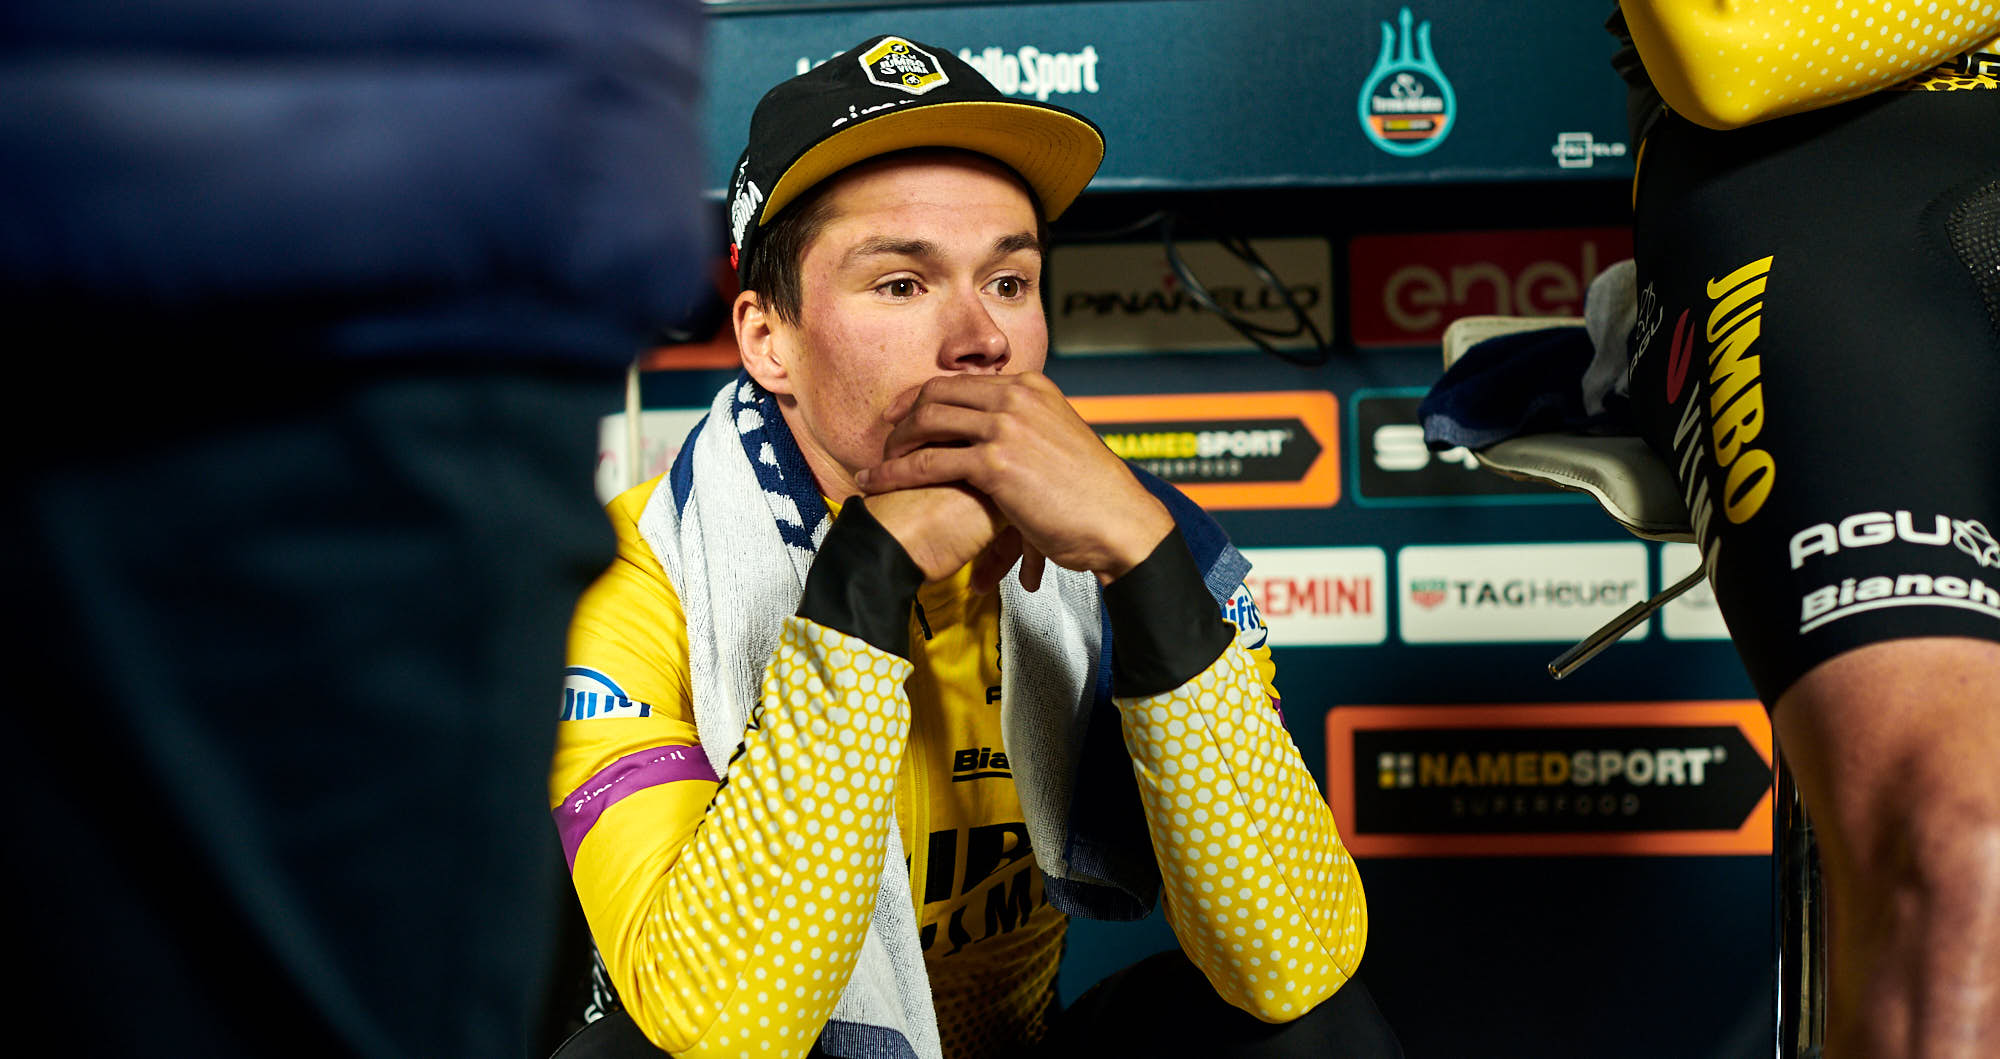 Primoz Roglic after only just losing the team time trial in Tirreno-Adriatico